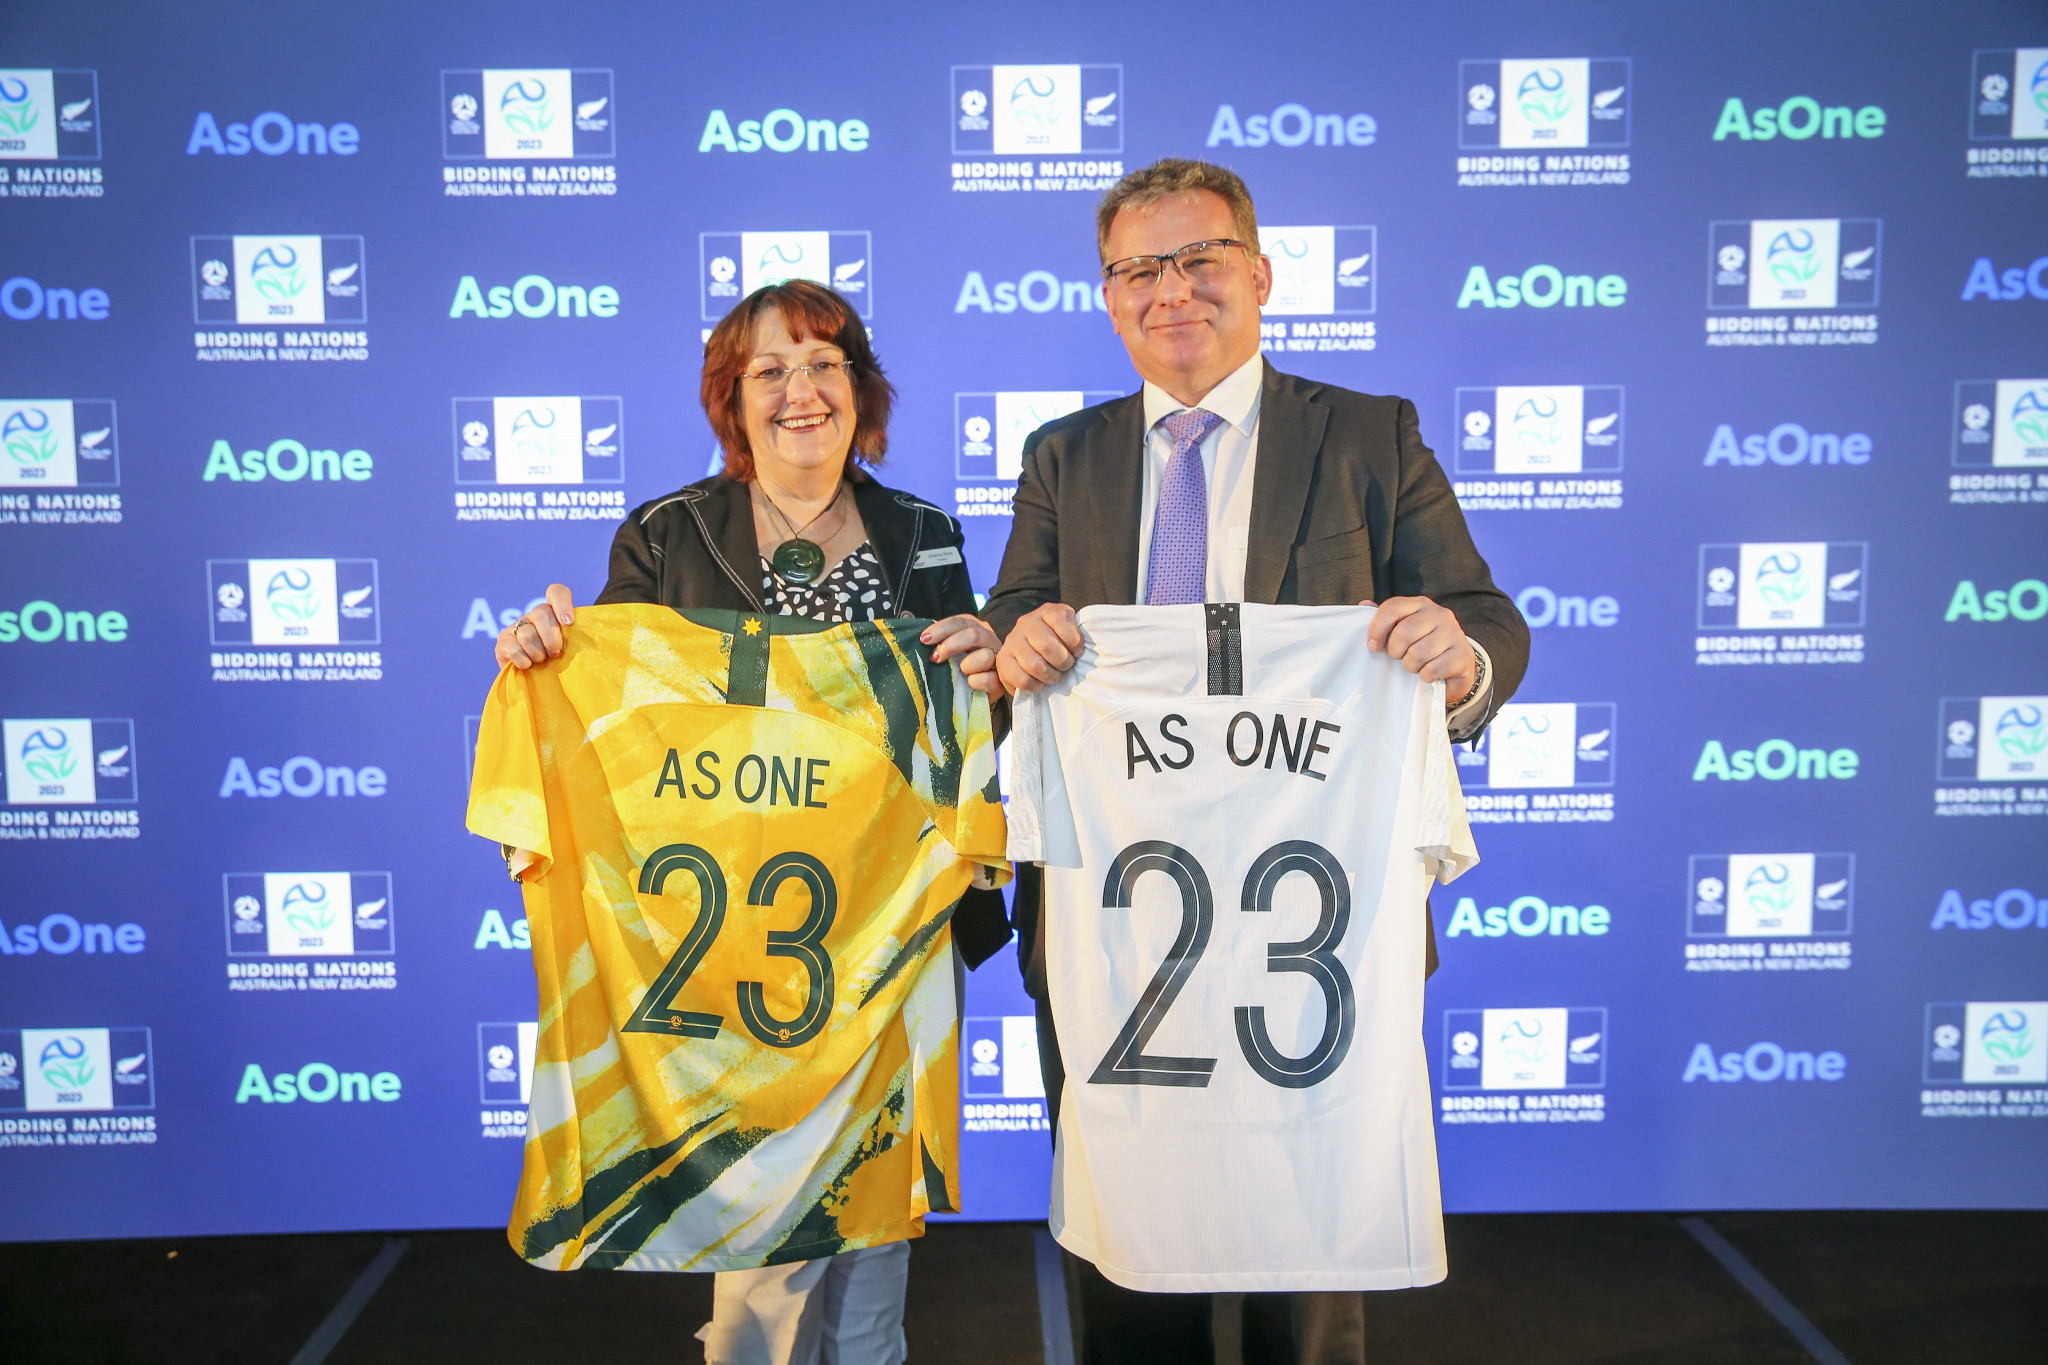 Australia and New Zealand are jointly bidding to host the 2023 FIFA Women's World Cup ©Getty Images